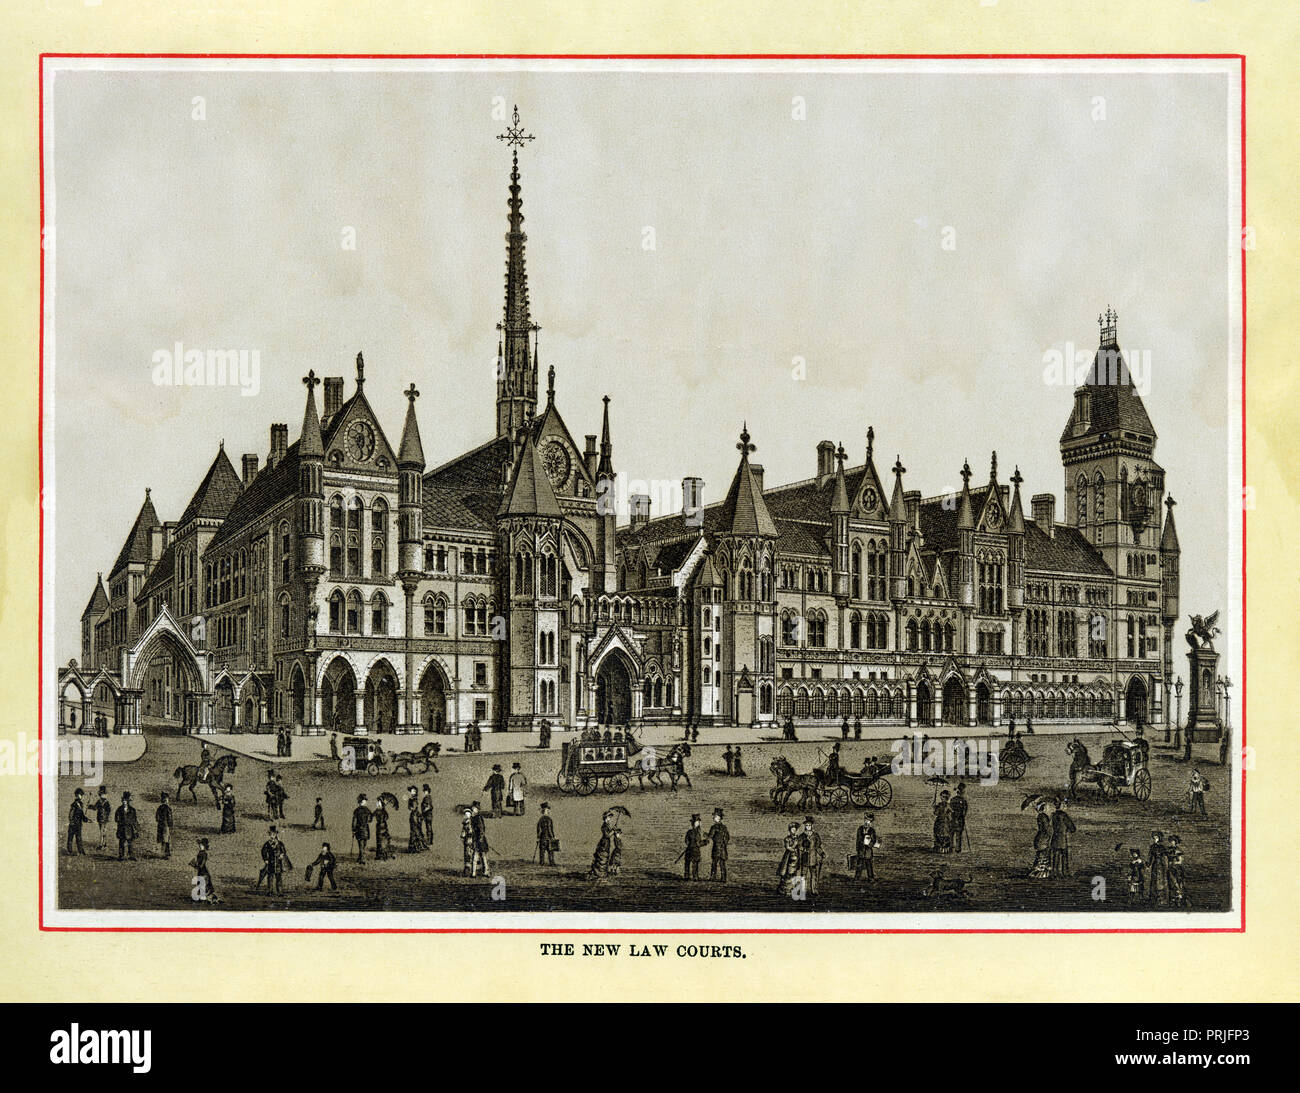 The New Law Courts, 1883 high quality steel engraving of the Royal Courts of Justice, opened by Queen Victoria the year before on the Strand just outside the boundary of the City of London as marked by Temple Bar on Fleet Street - Stock Image